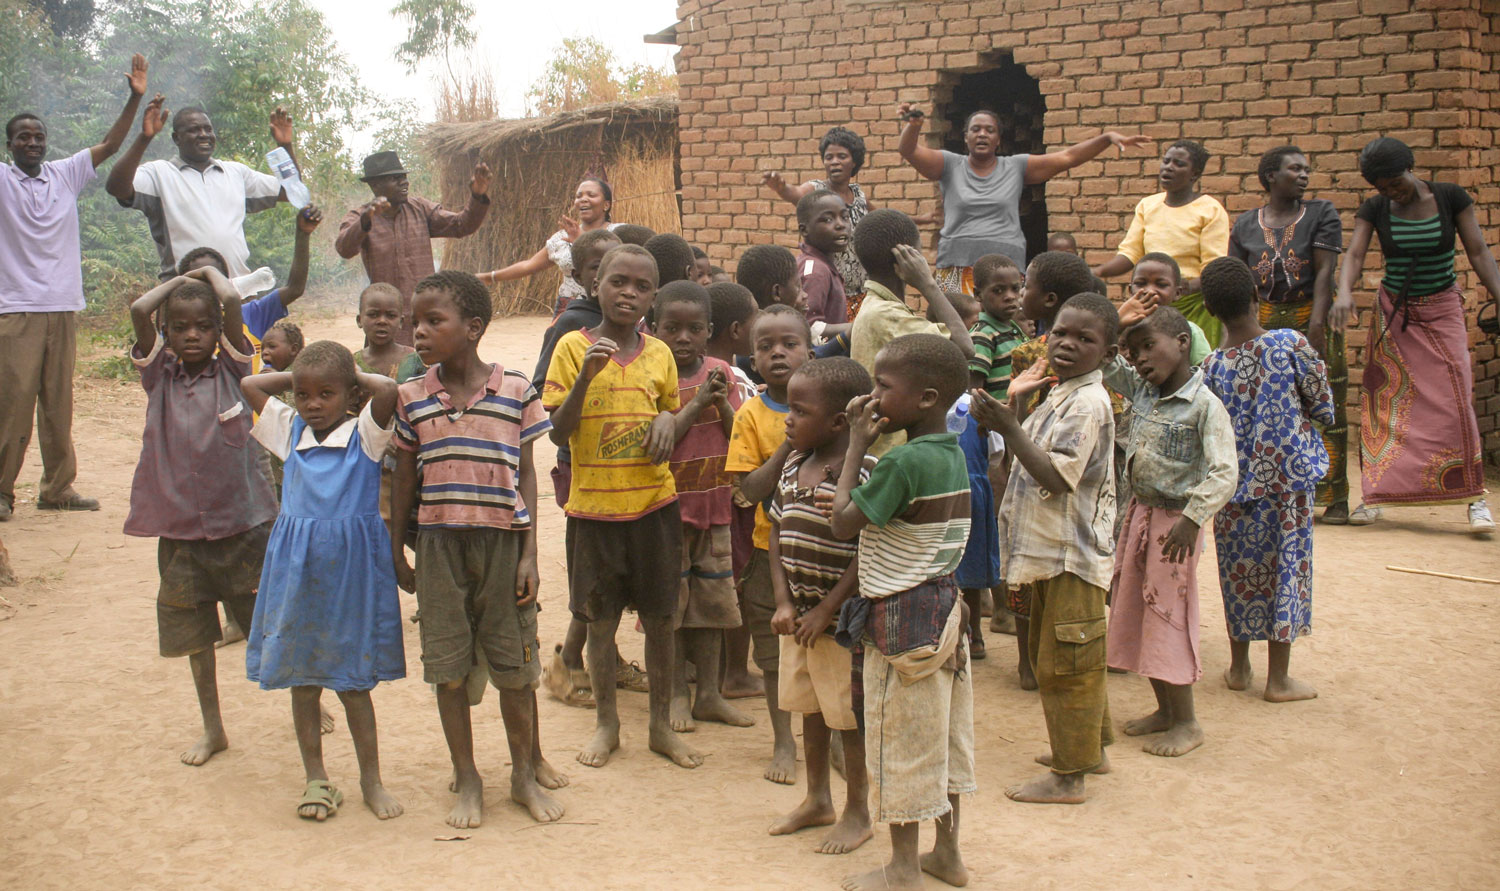 200 of the most vulnerable children in Mcheneke Community receive a daily meal, access to education and basic health care.